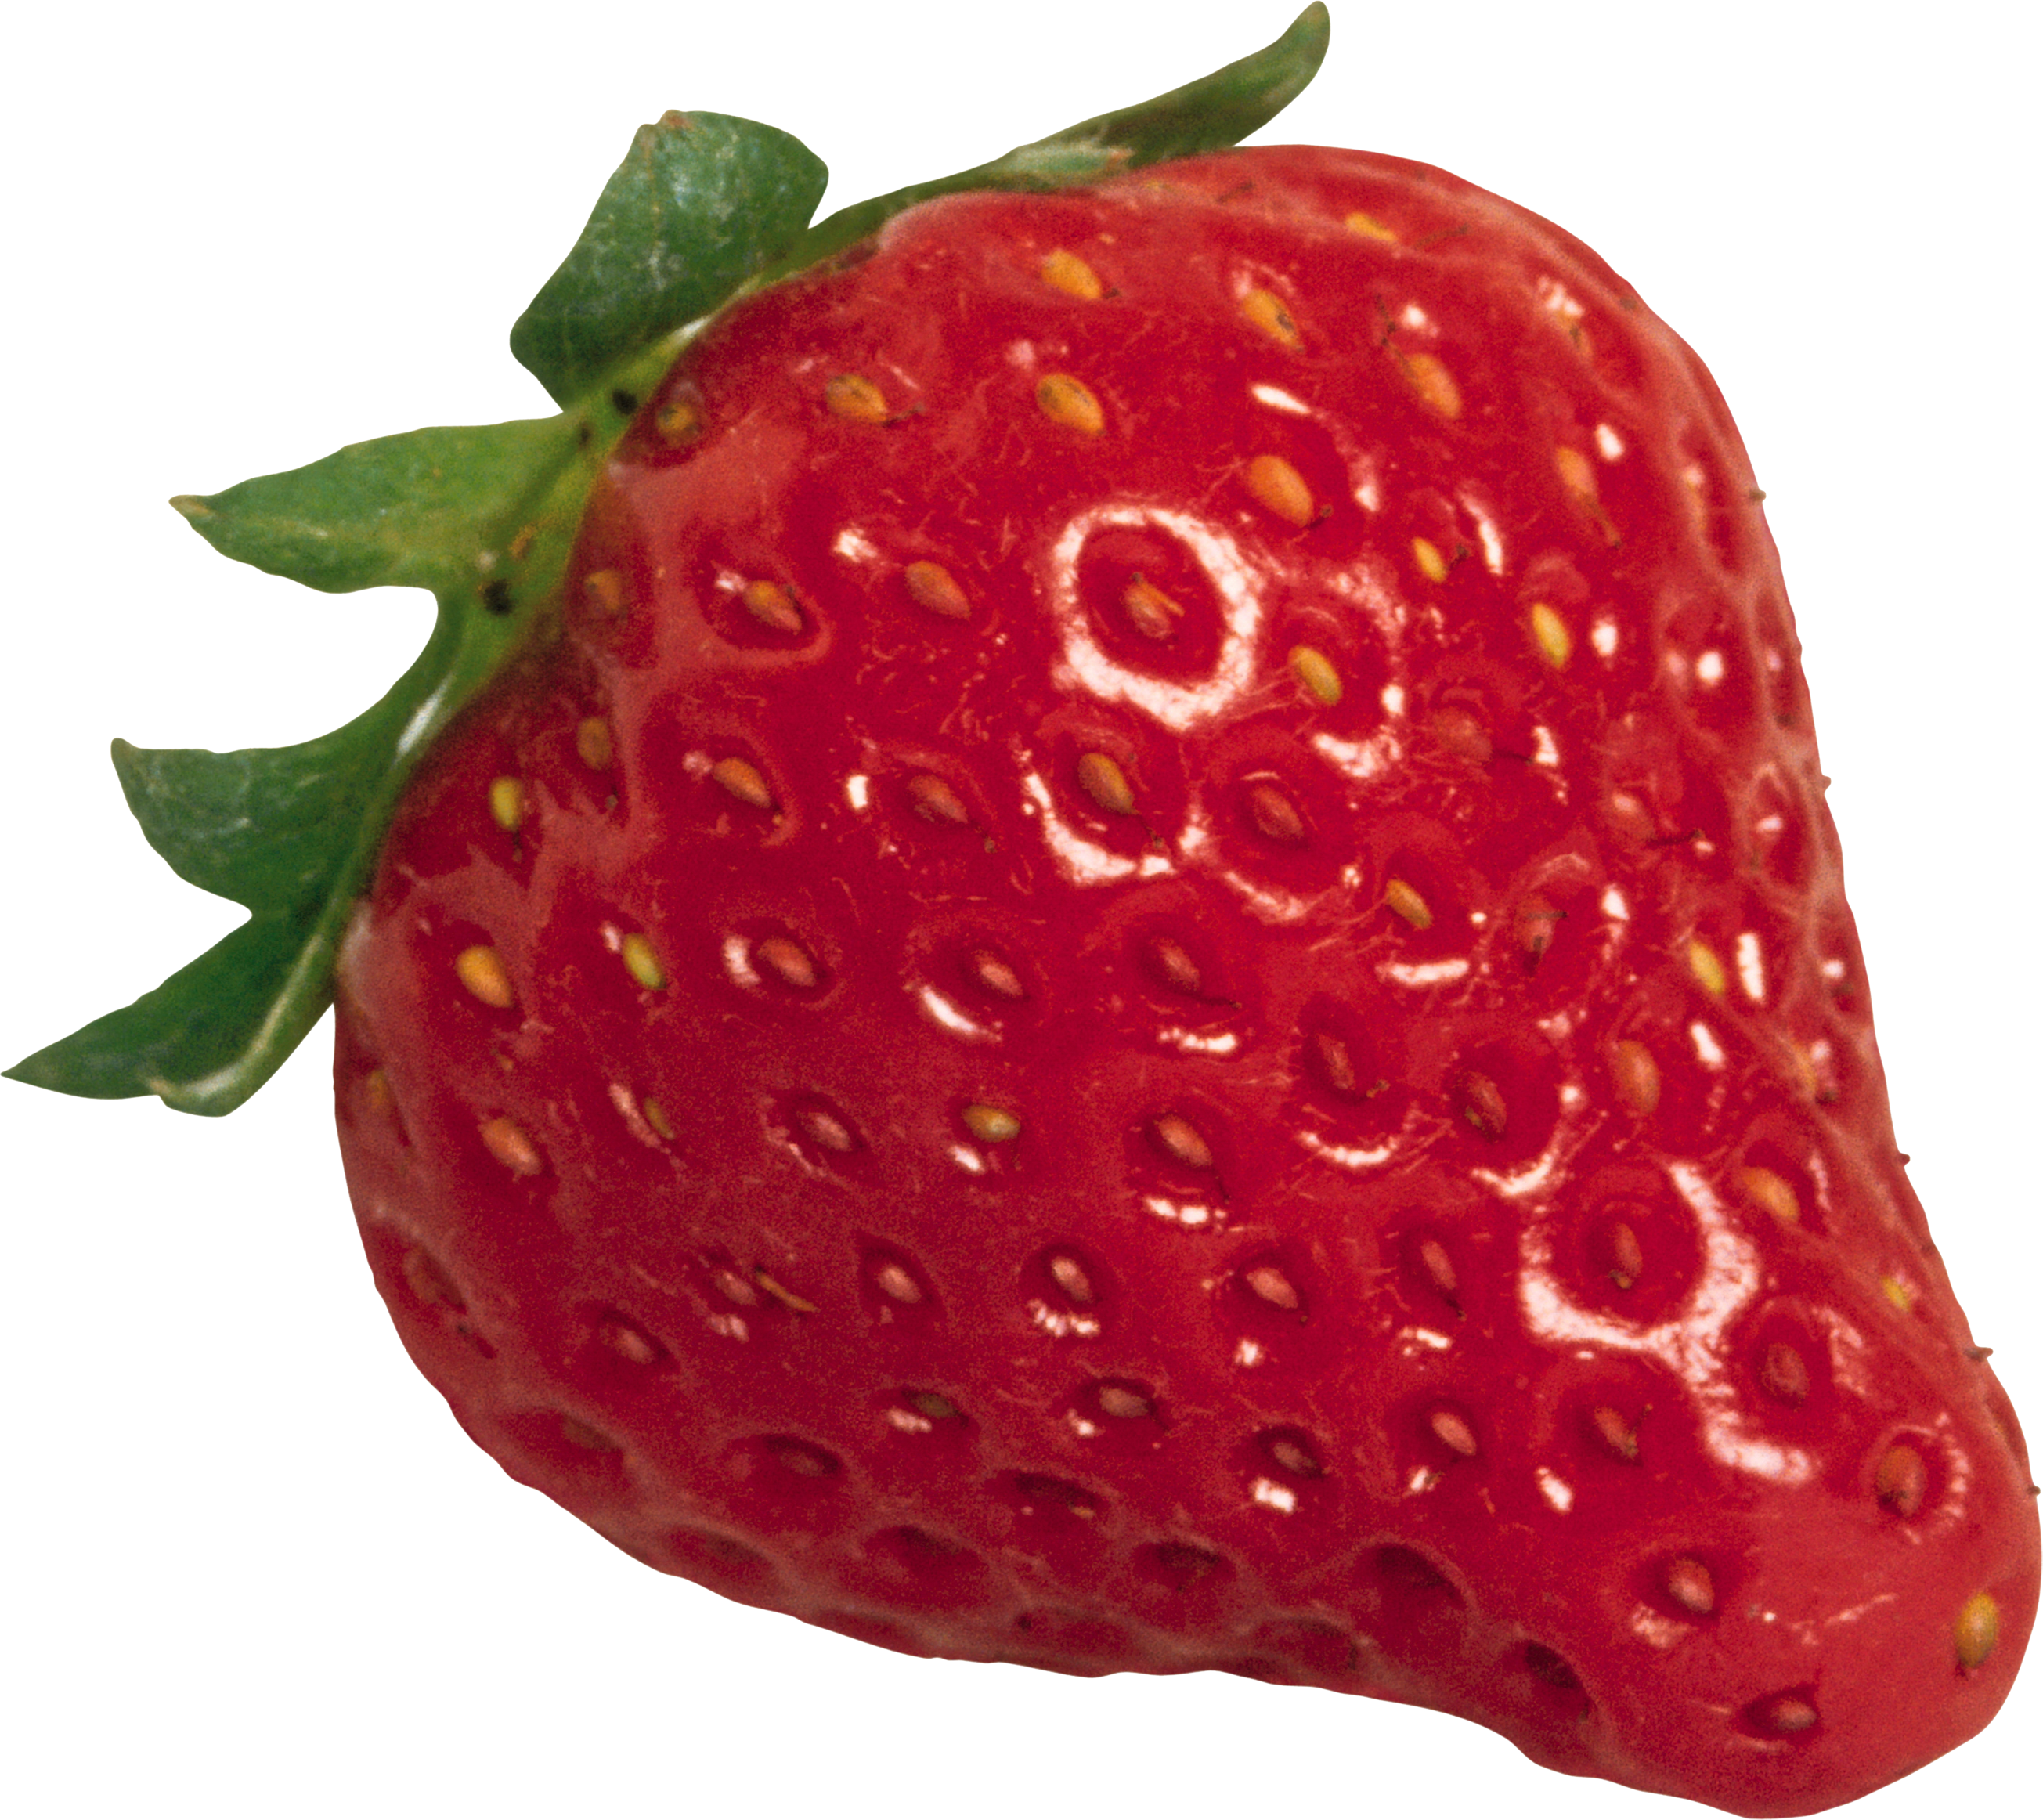 Strawberries clipart single. Strawberry png image picture